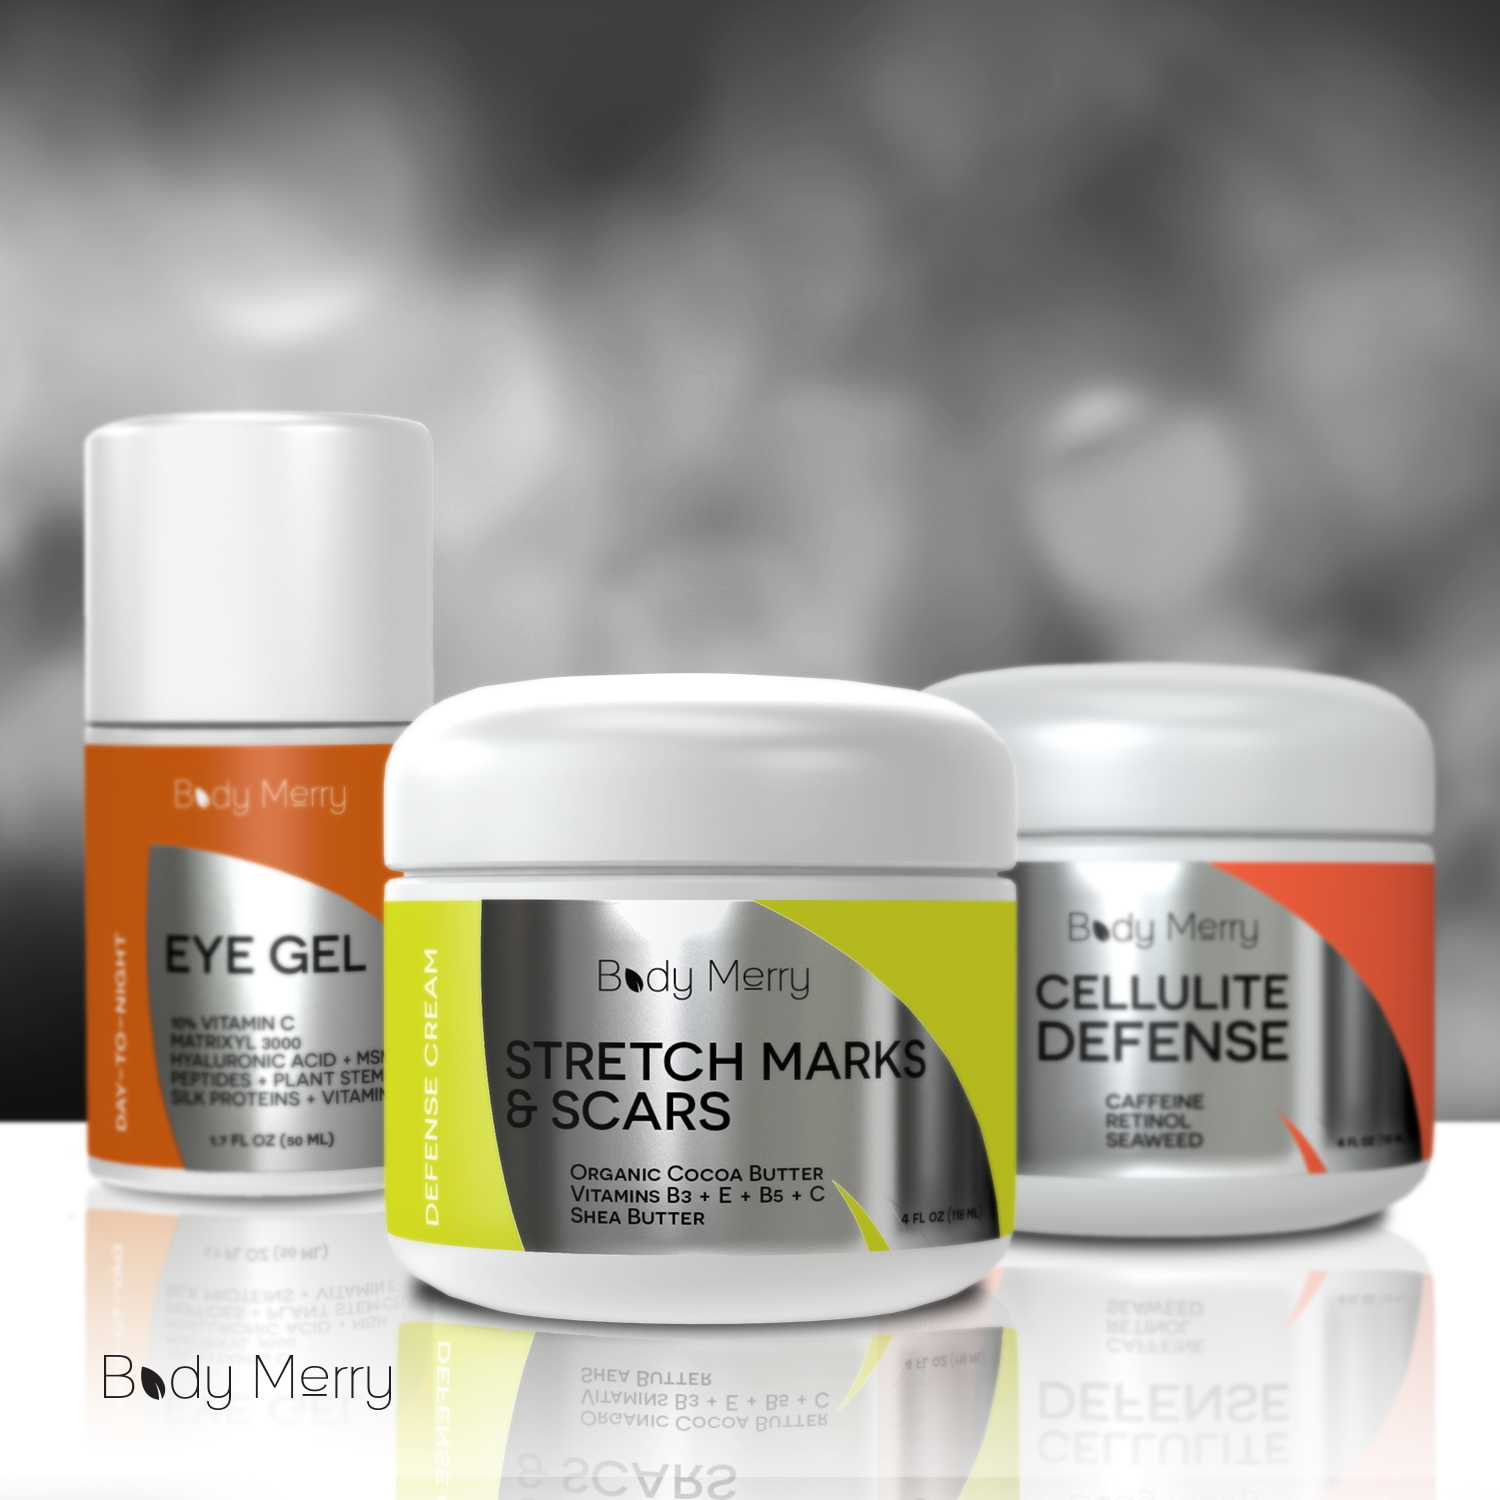 Body Merry Eye Gel, Stretch Marks & Scars body butter, and Cellulite Defense cream